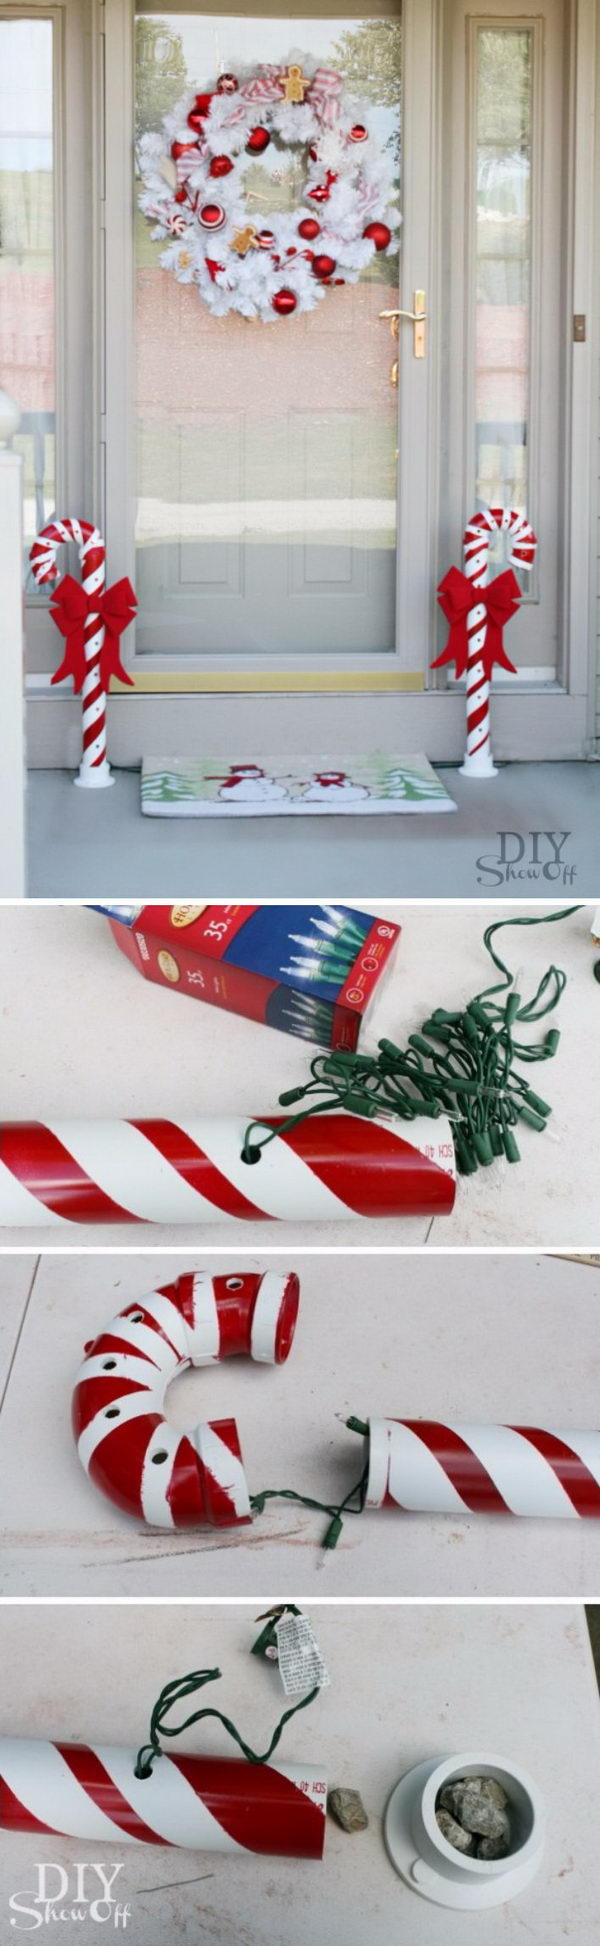 Candy Canes Made from PVC Pipes.